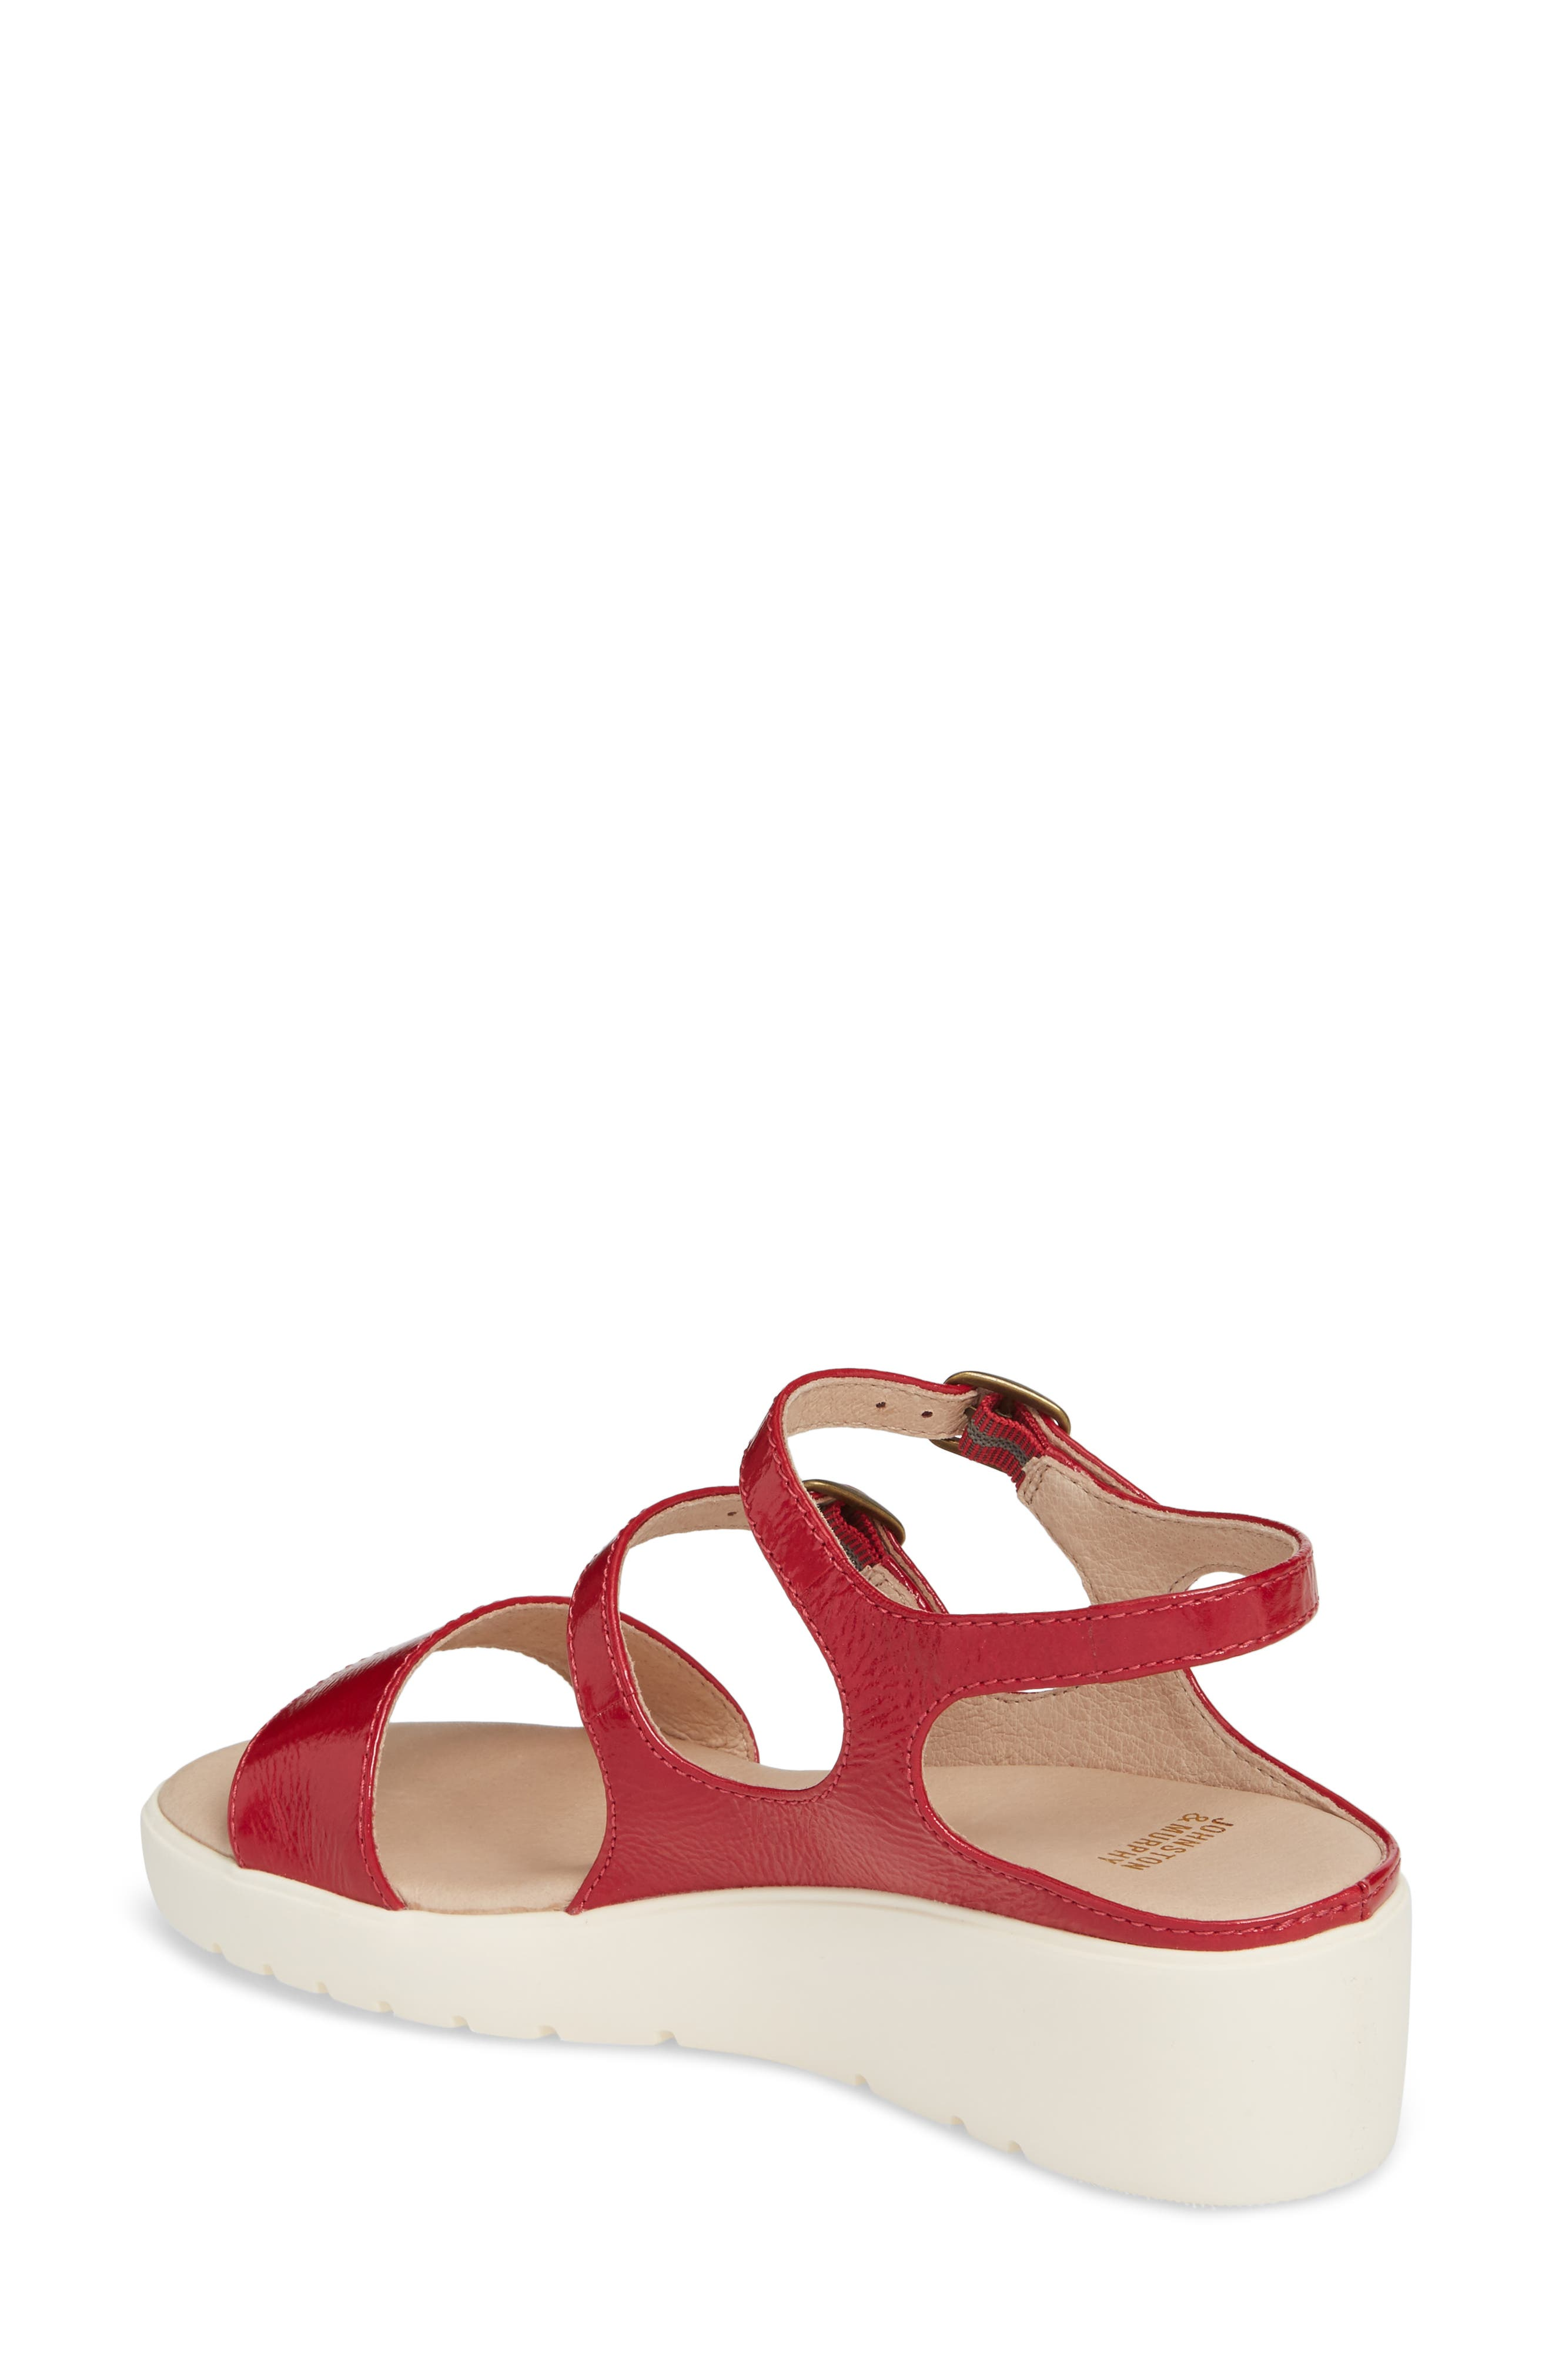 Clara Sandal,                             Alternate thumbnail 7, color,